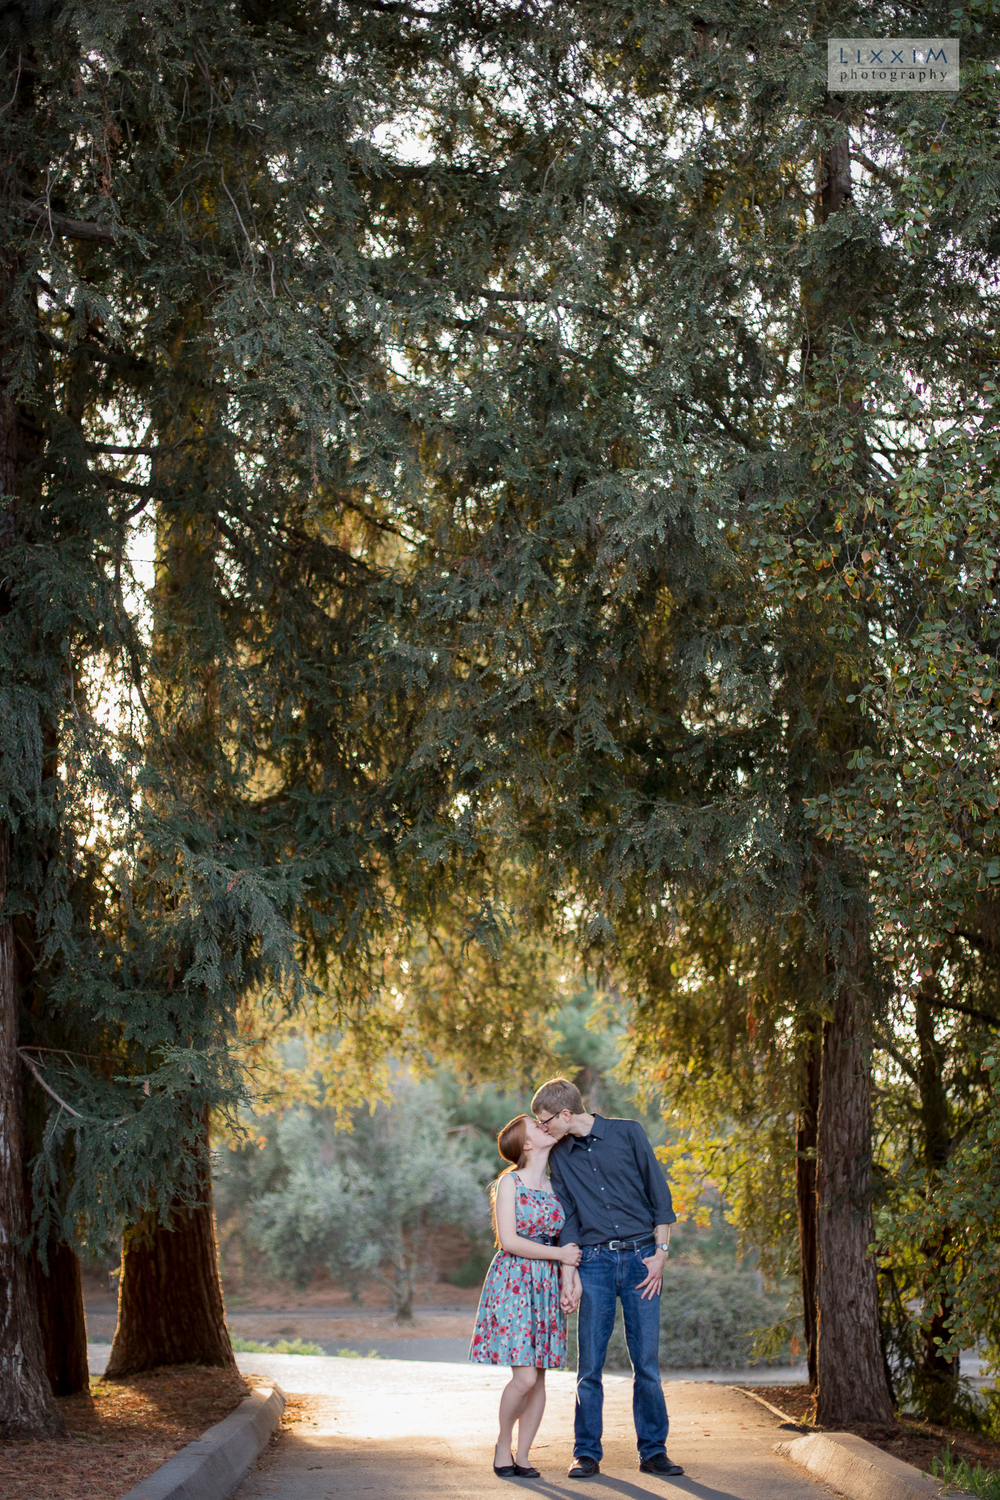 UCDavis-engagement-photography-lixxim.jpg